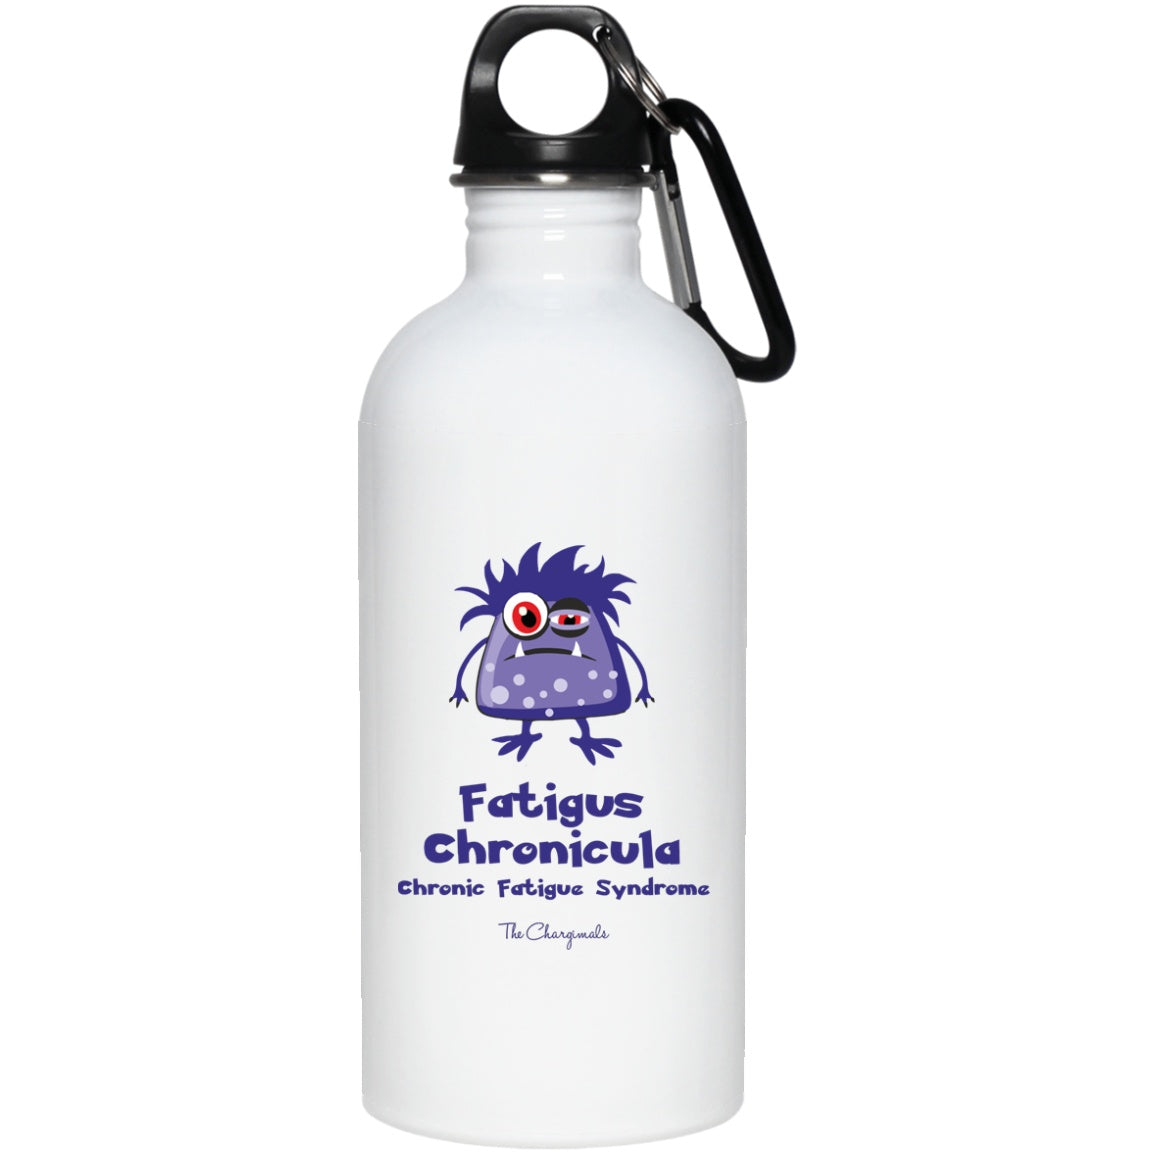 Sleepy the Chronic Fatigue Syndrome Monster Mug, Travel Mug And Water Bottle - The Unchargeables